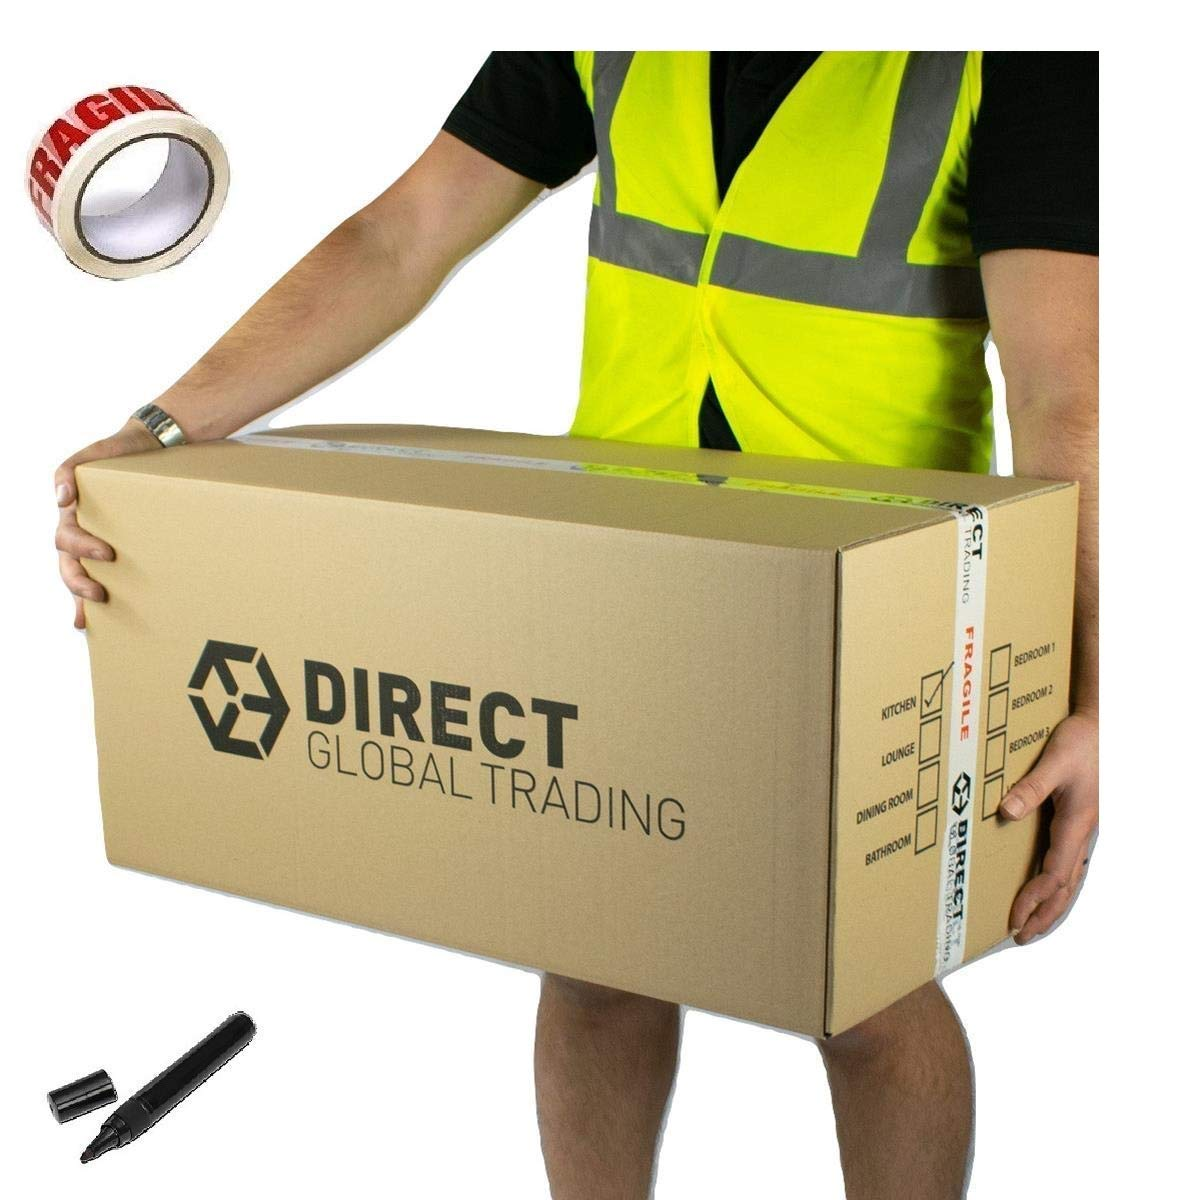 10 Strong Extra Long Large Cardboard Storage Packing Moving House Boxes Double Walled with Room List Free Quality Fragile Tape and Black Marker Pen 76cm x 36.5cm x 38cm Direct Global Trading